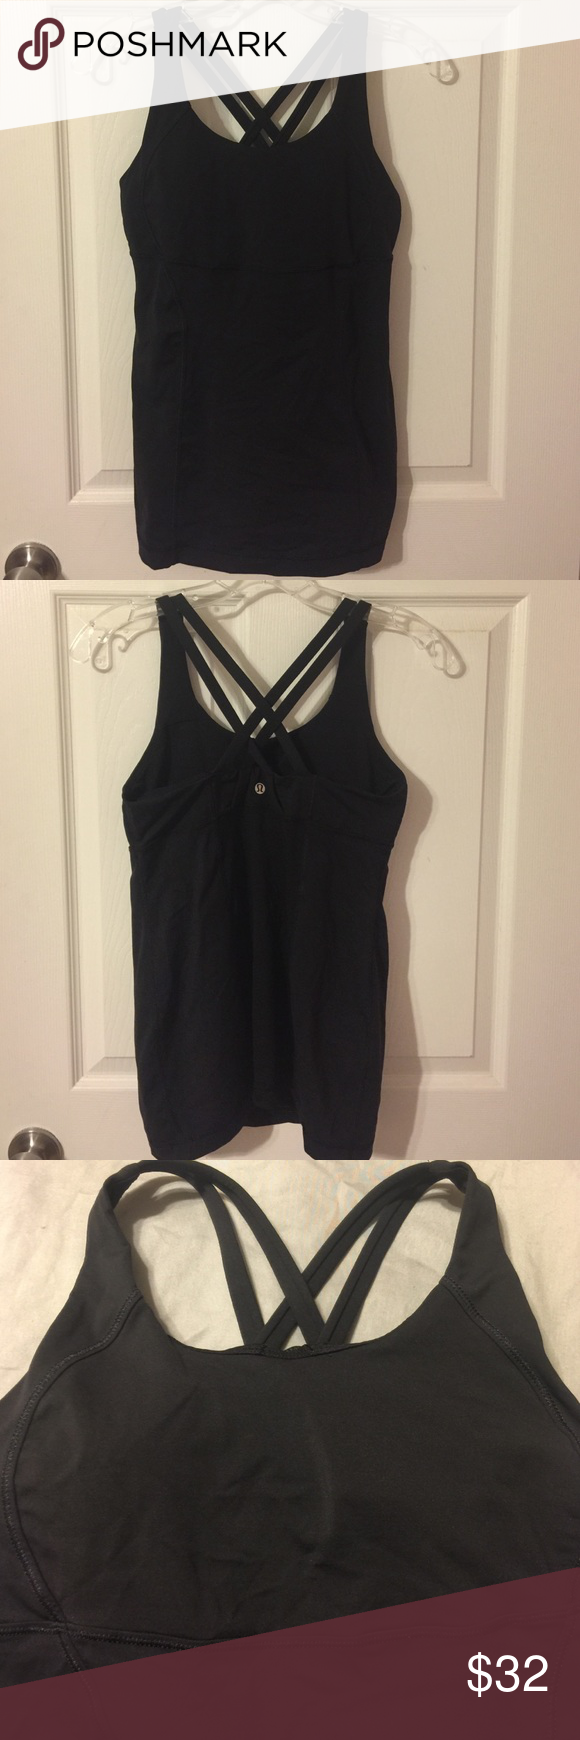 Lululemon tank Solid black tank in excellent condition. Criss-cross straps. Bra top with removable pads (included). Size 8, but tag has been removed. Hits just below hip. Super flattering on! lululemon athletica Tops Tank Tops